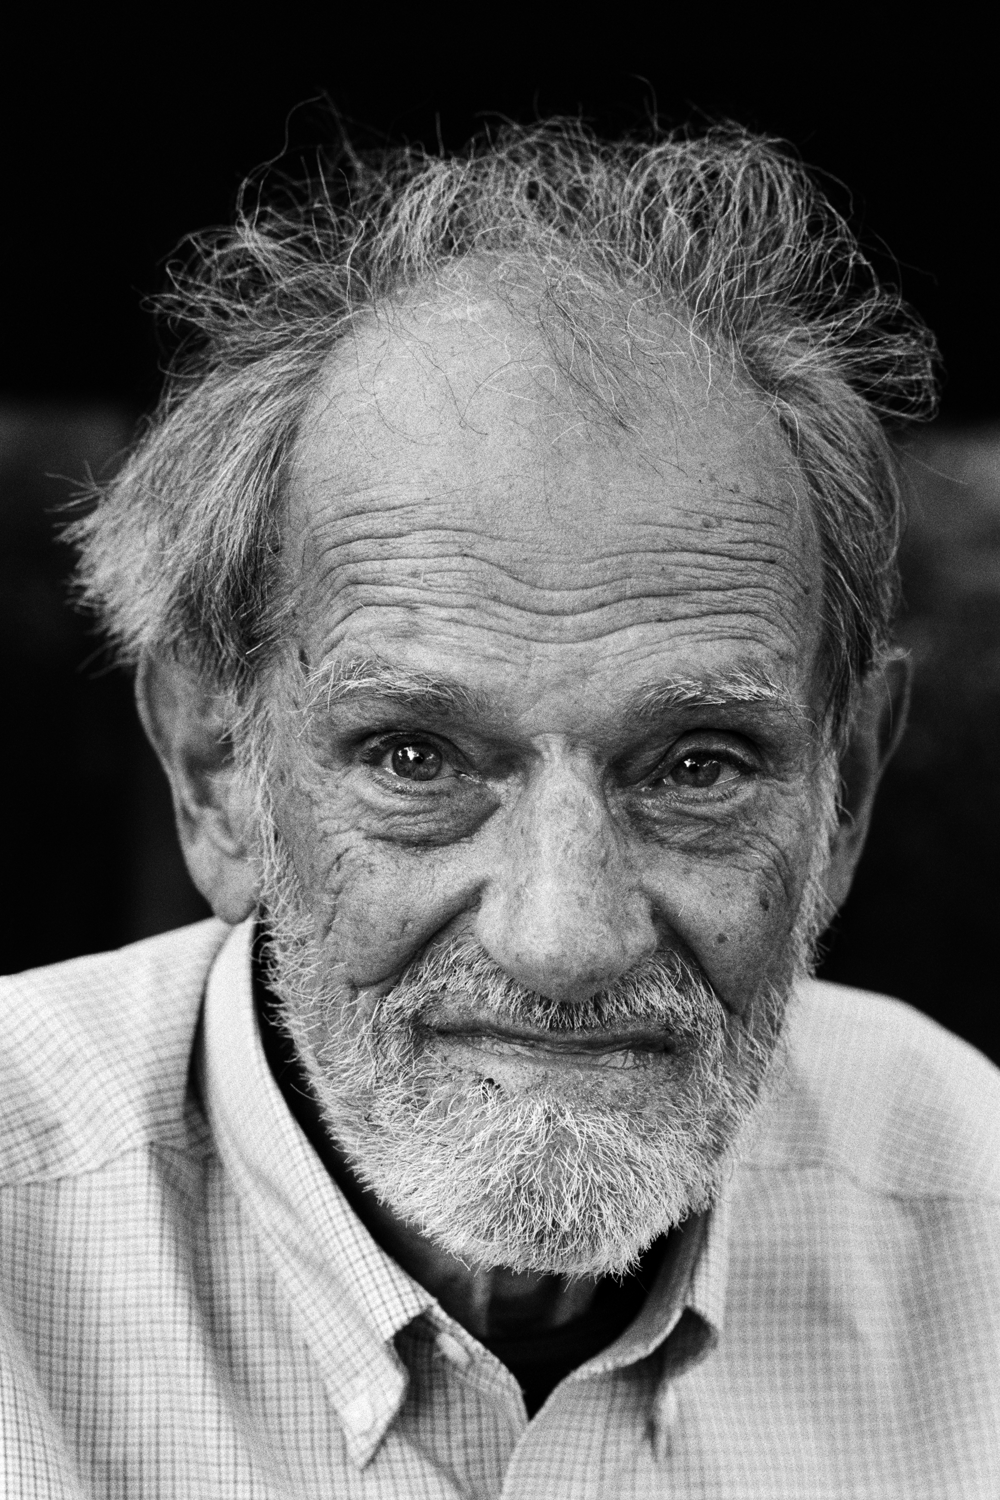 Lloyd Shapley, Photo: Peter Badge from his 'Nobel Portraits' series.